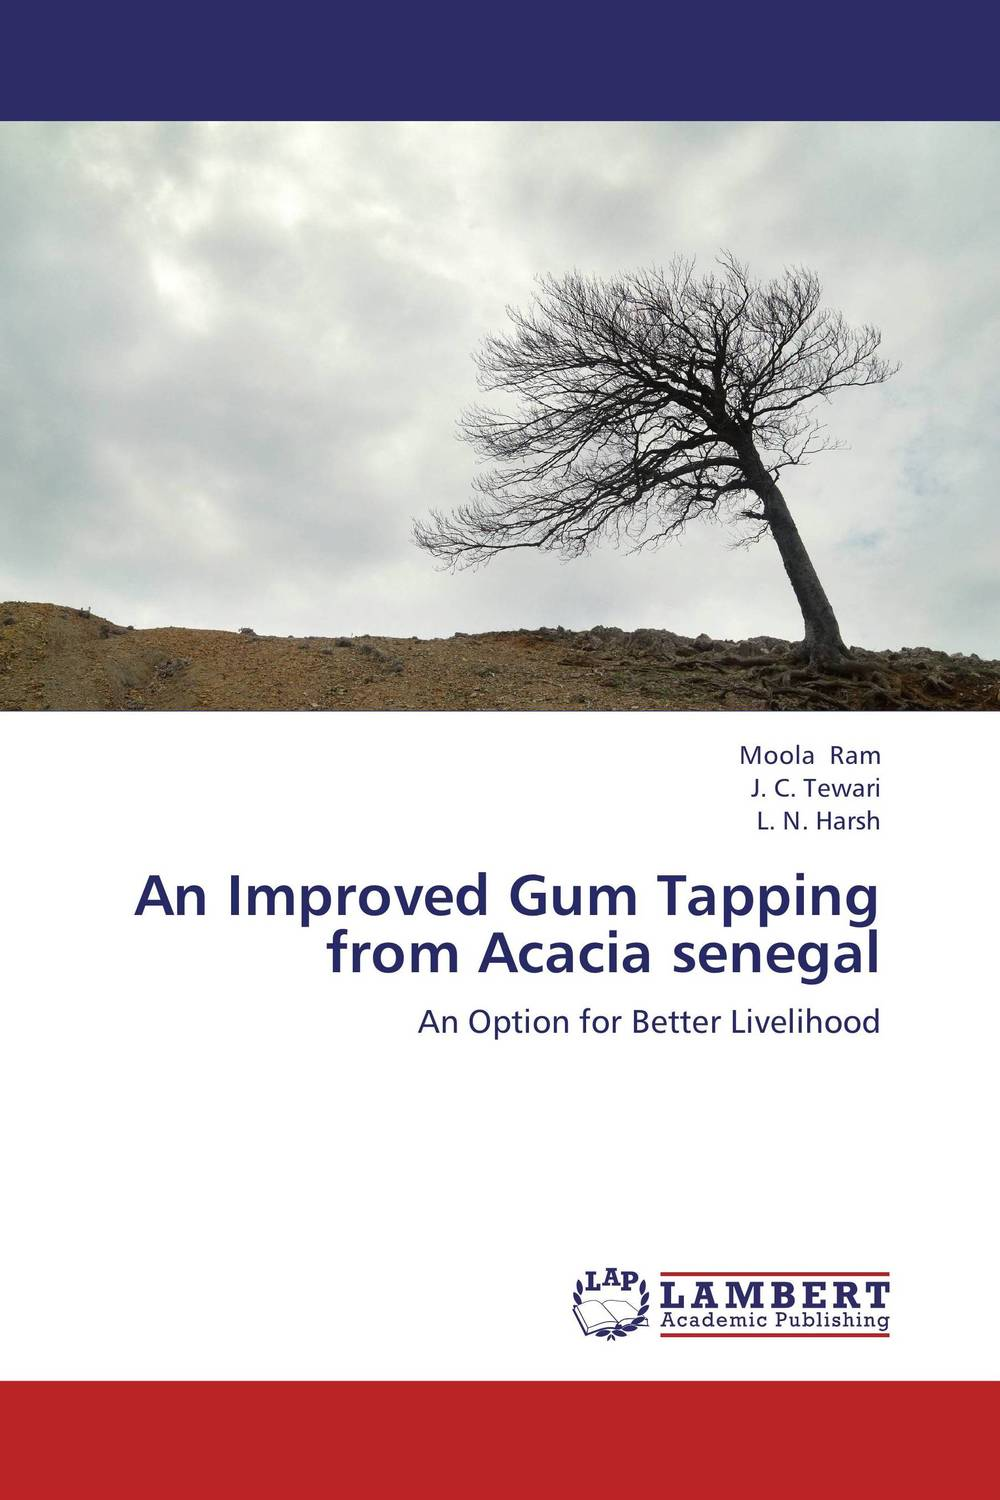 An Improved Gum Tapping from Acacia senegal arcade ndoricimpa inflation output growth and their uncertainties in south africa empirical evidence from an asymmetric multivariate garch m model